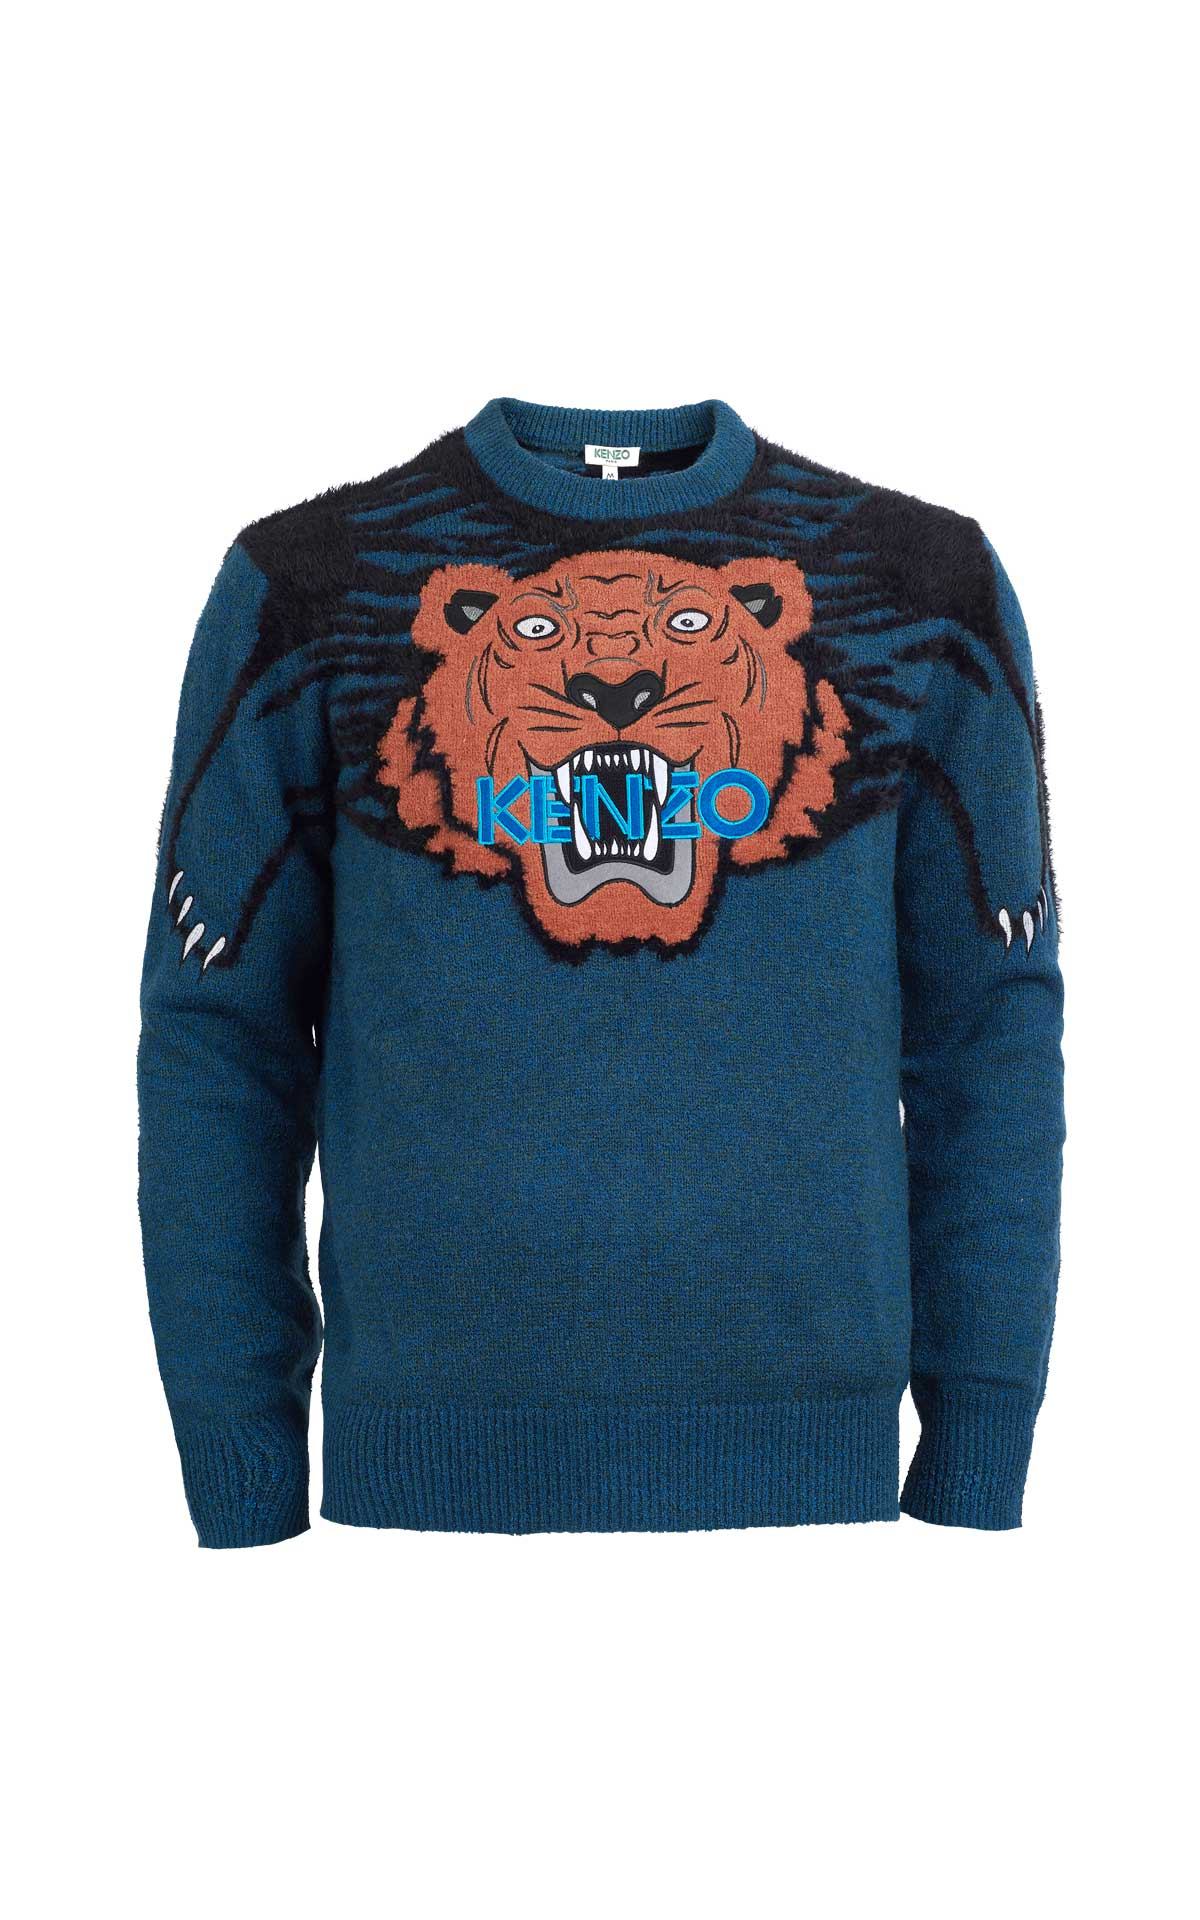 Blue sweater with a tiger Kenzo